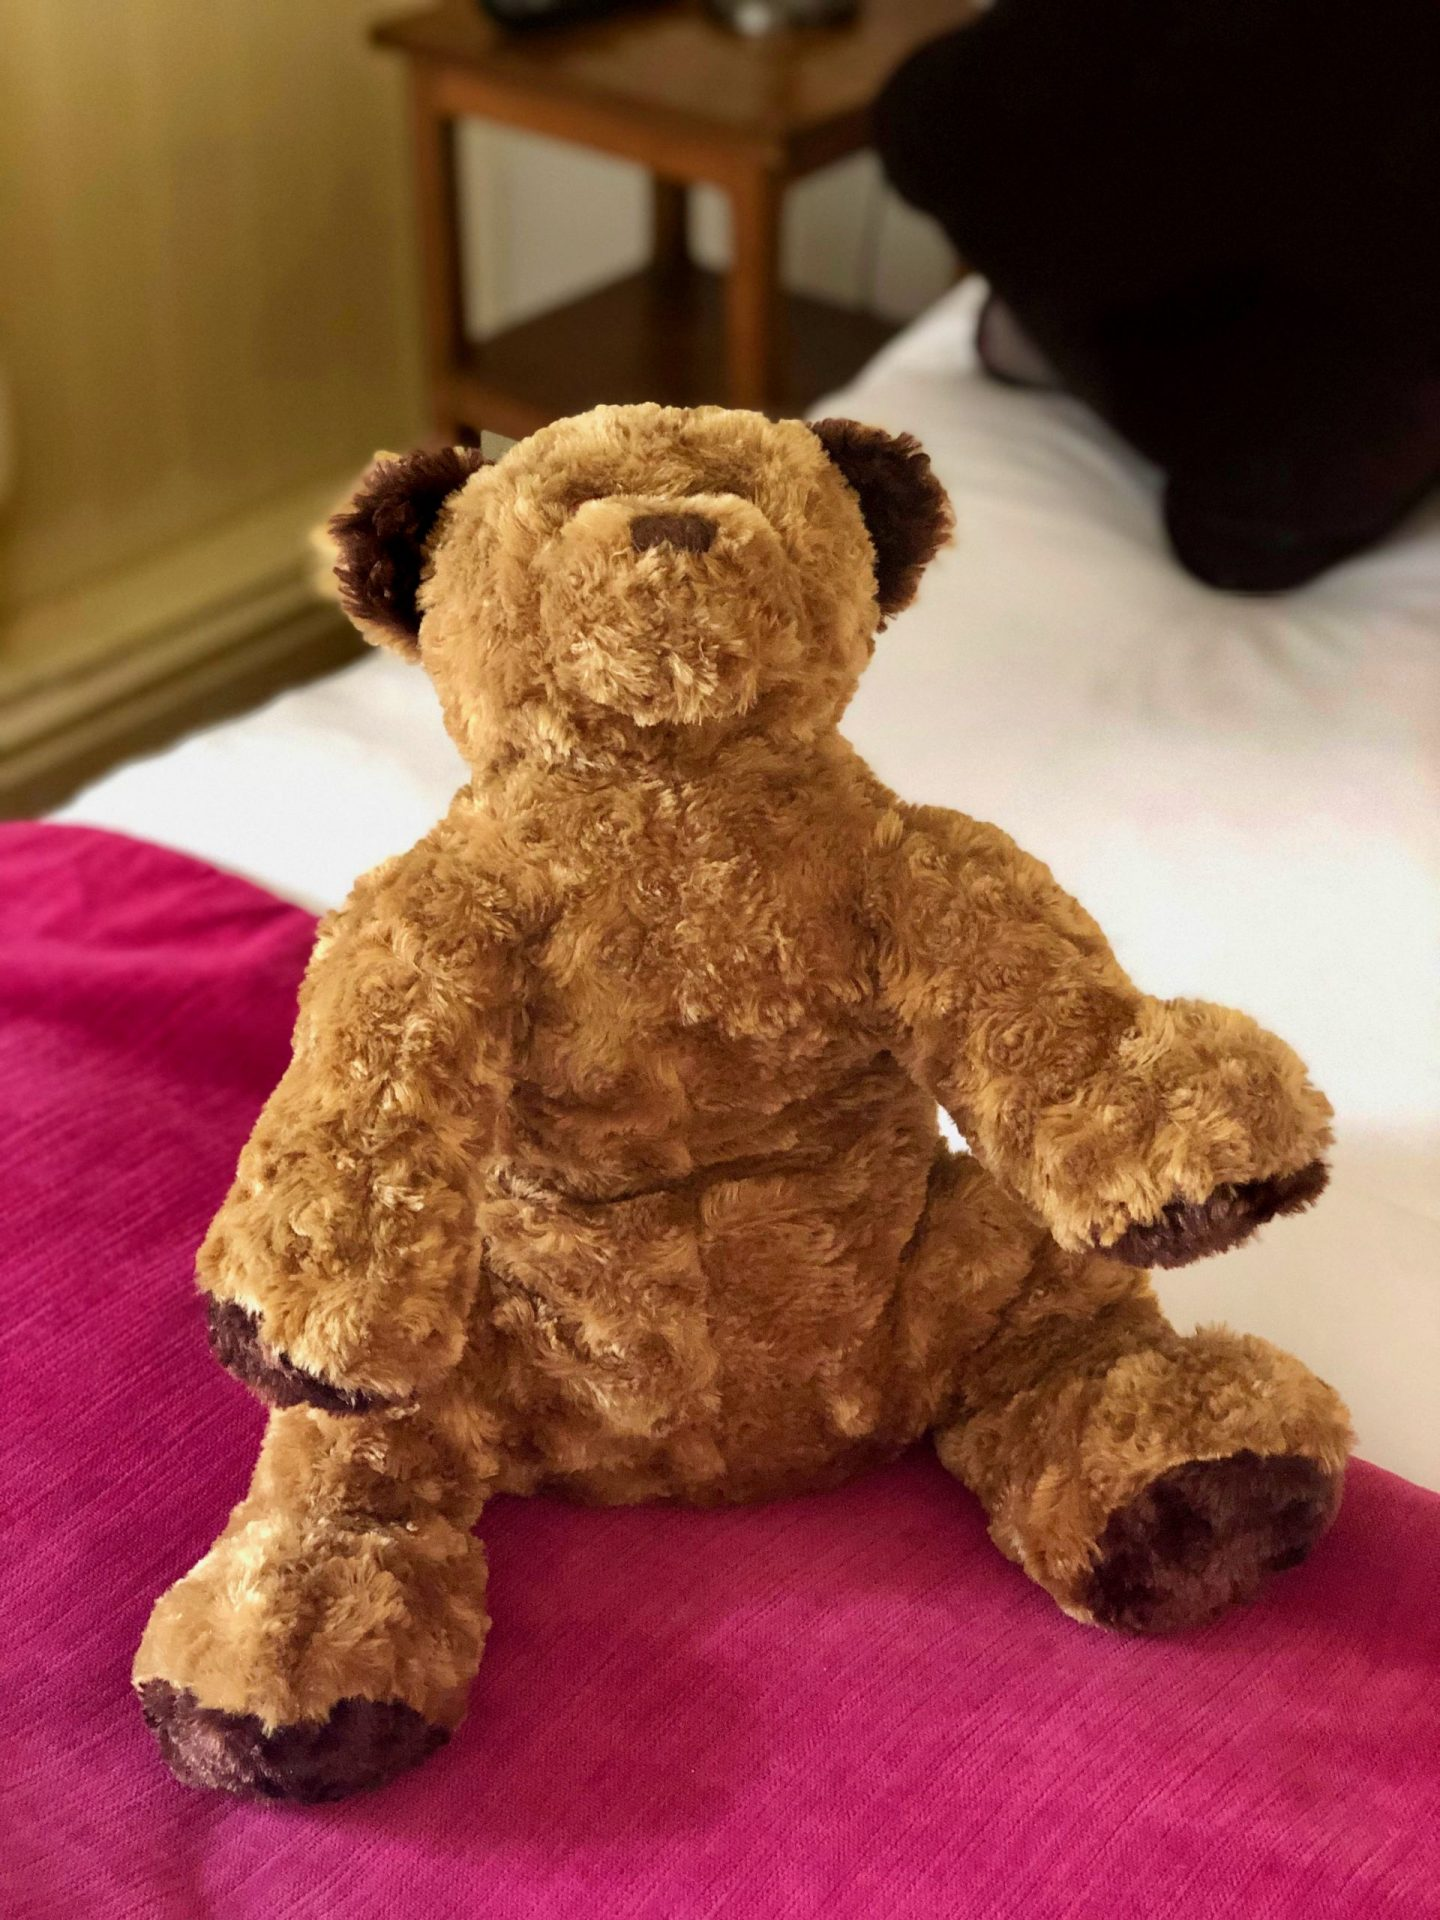 Teddy bear sat up on the bed at the black swan helmsley, sat on a bright pink throw